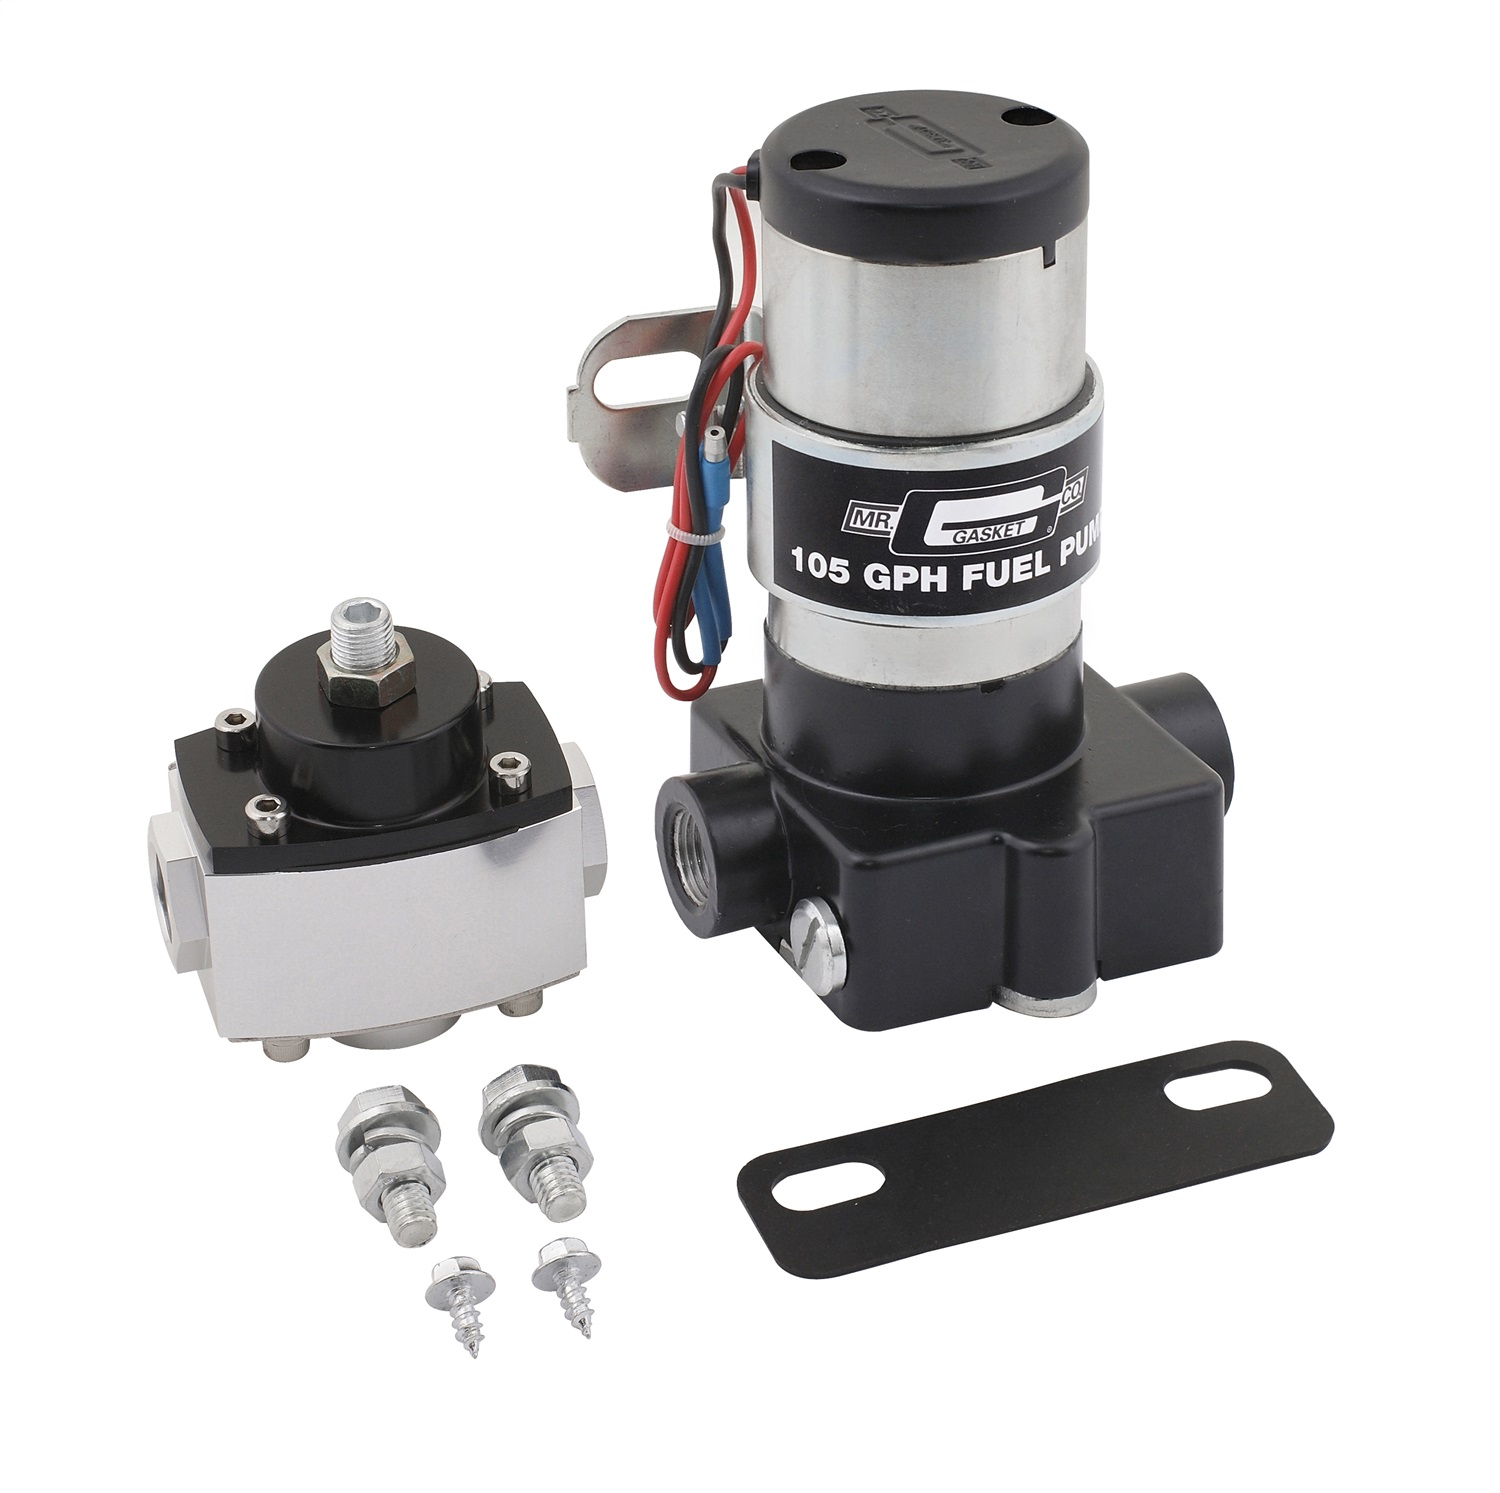 Mr. Gasket Electric Fuel Pump (105P)